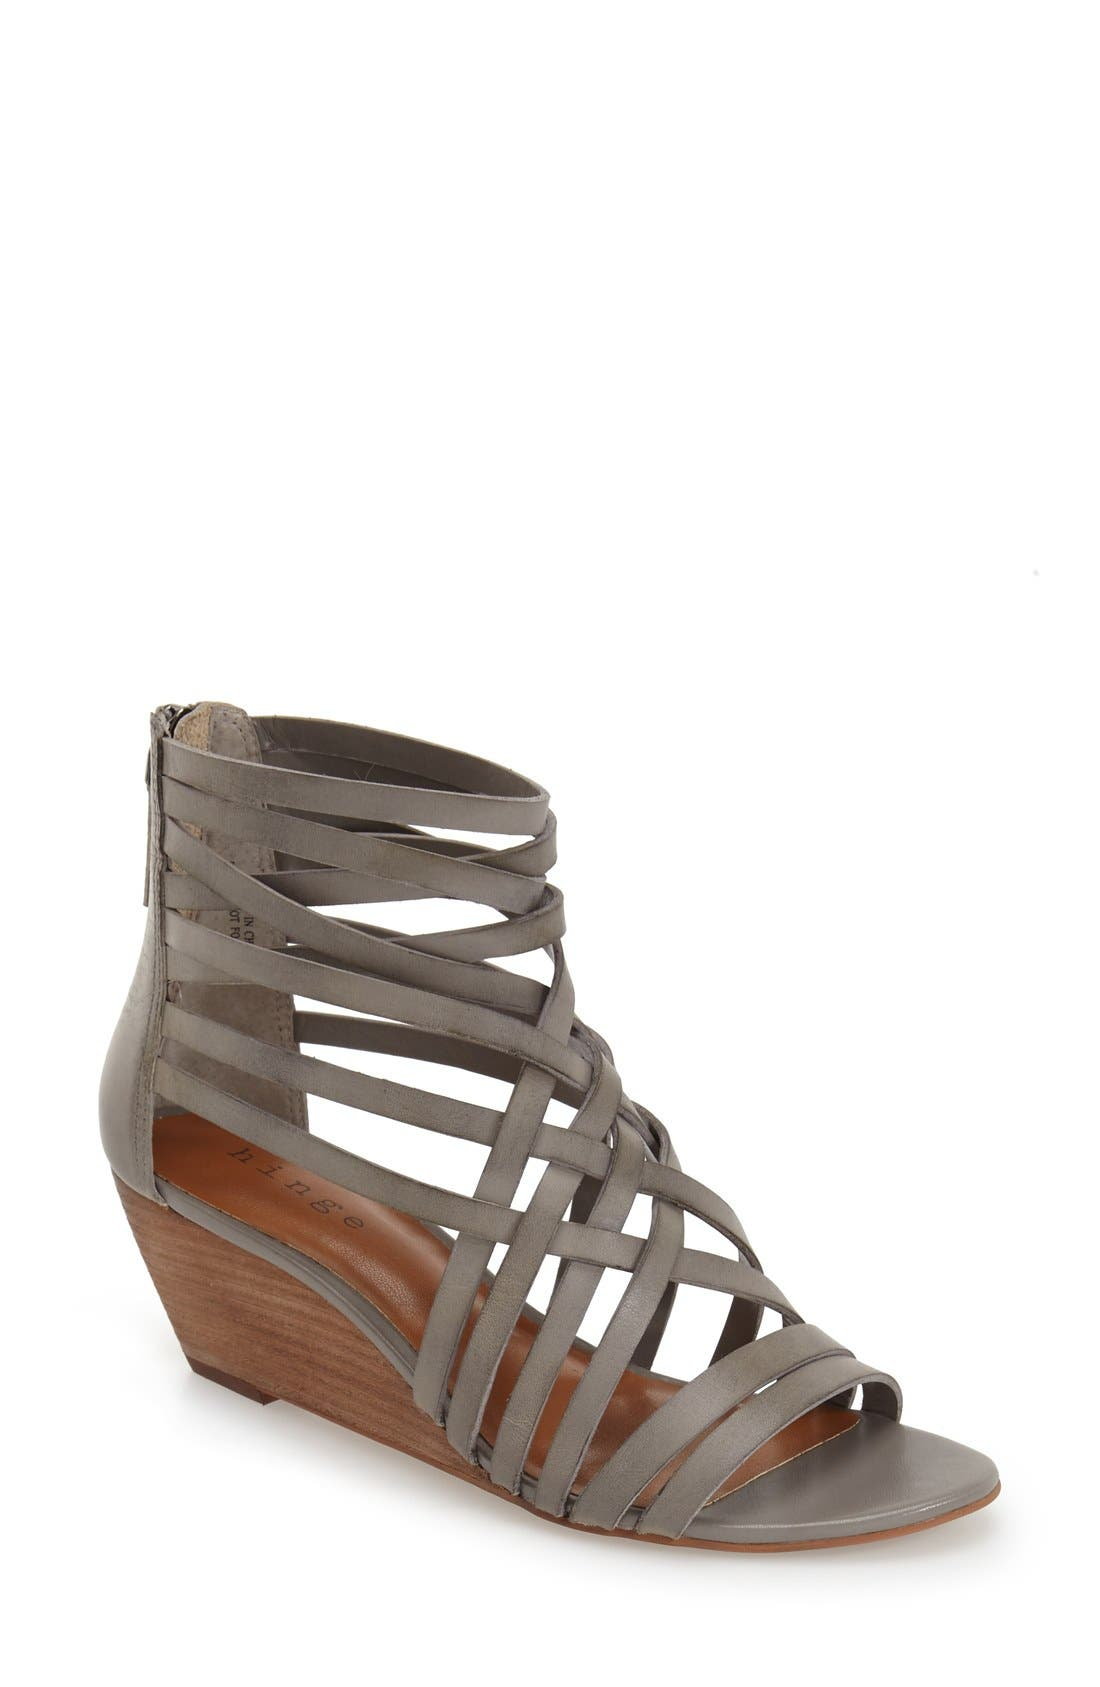 Alternate Image 1 Selected - Hinge 'Neta' Leather Wedge Sandal (Women)